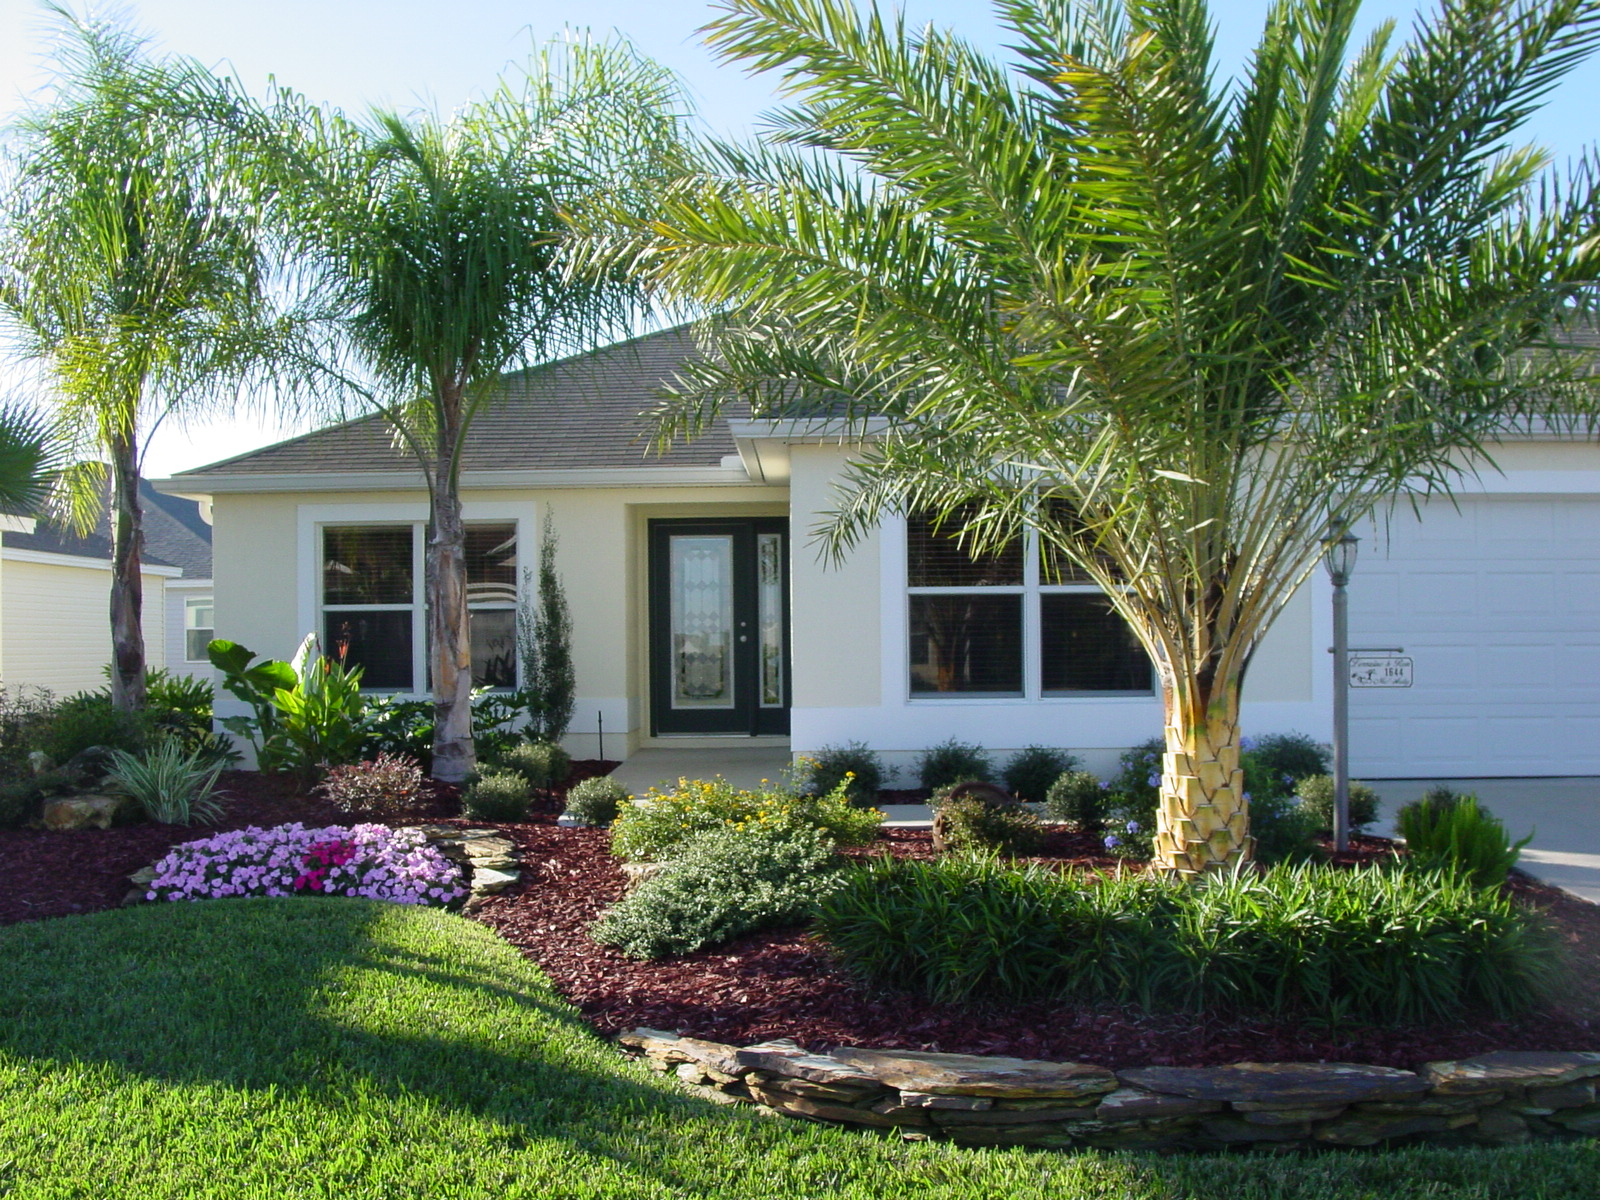 Florida garden landscape ideas photograph rons landscaping for Lawn landscaping ideas